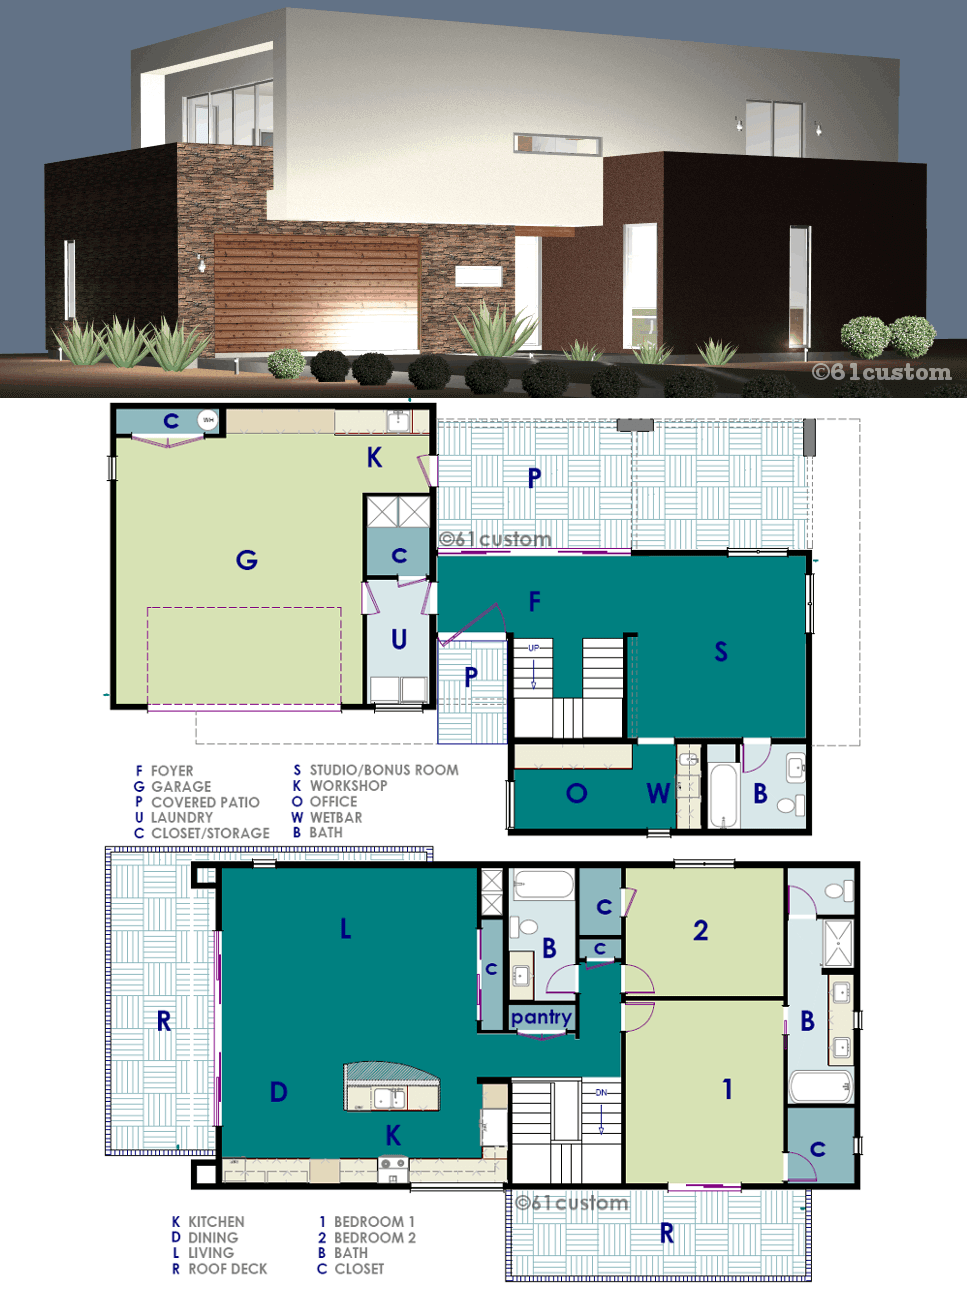 Awesome Modern Live Work House Plan | 61custom